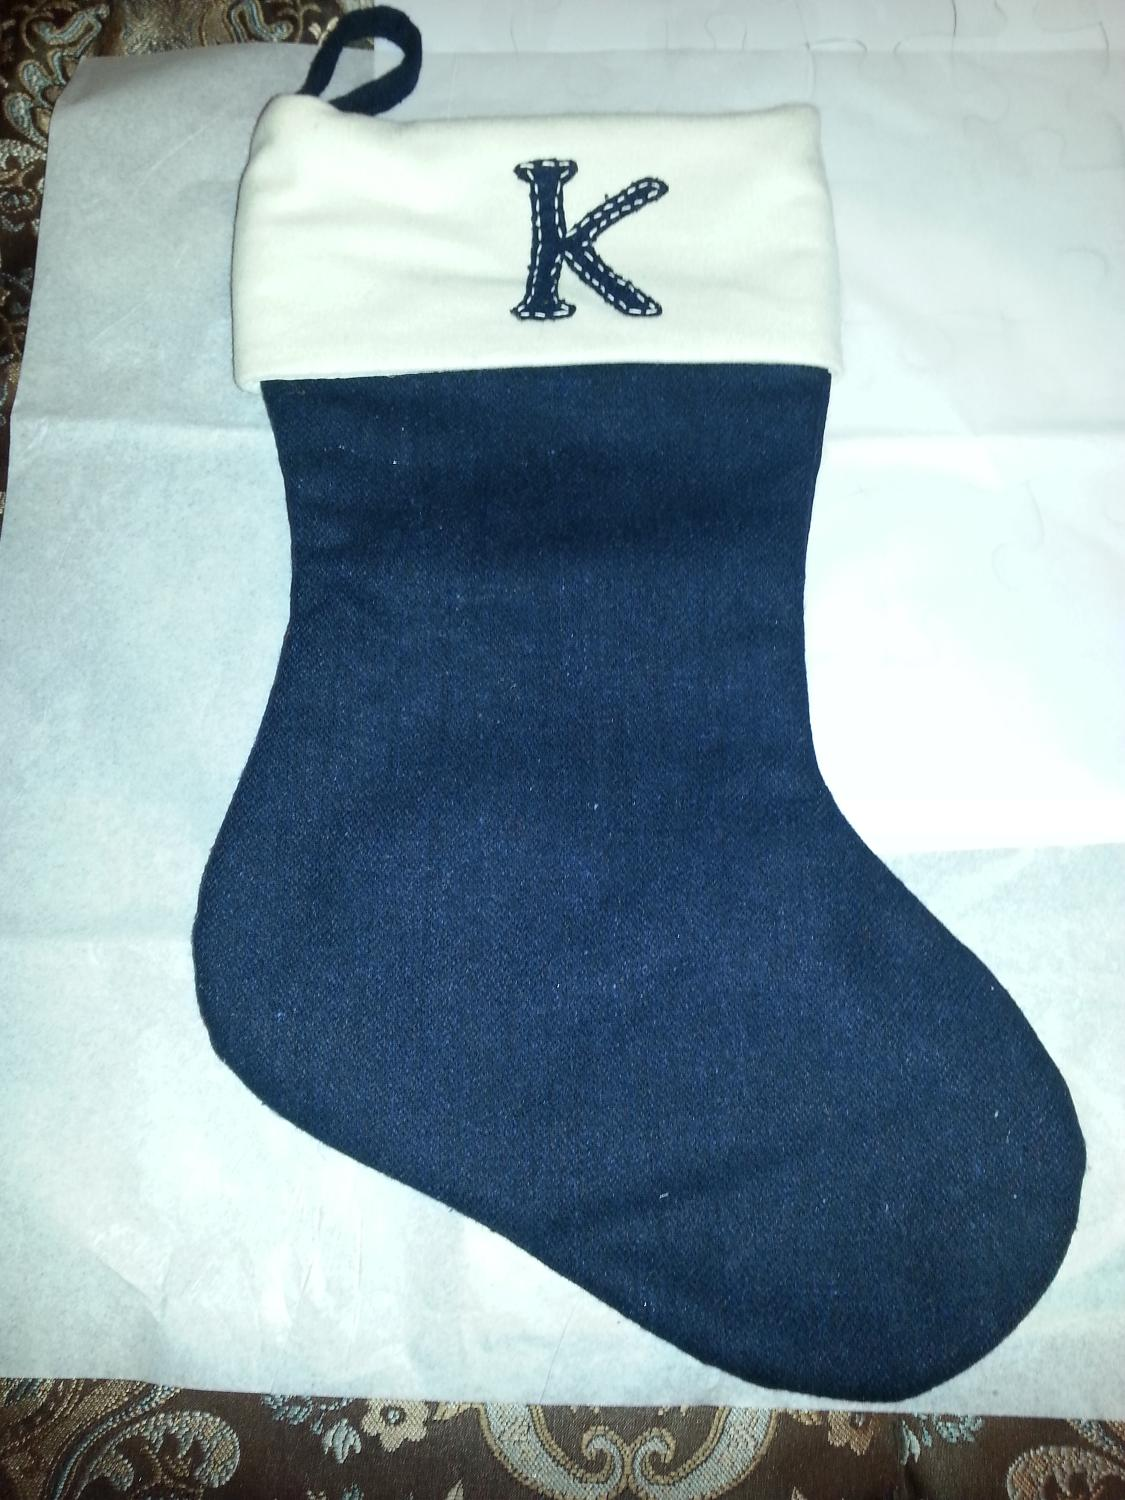 Letter Christmas Stockings.Christmas Stocking Black And White With The Letter K Cross Post Reduce Price